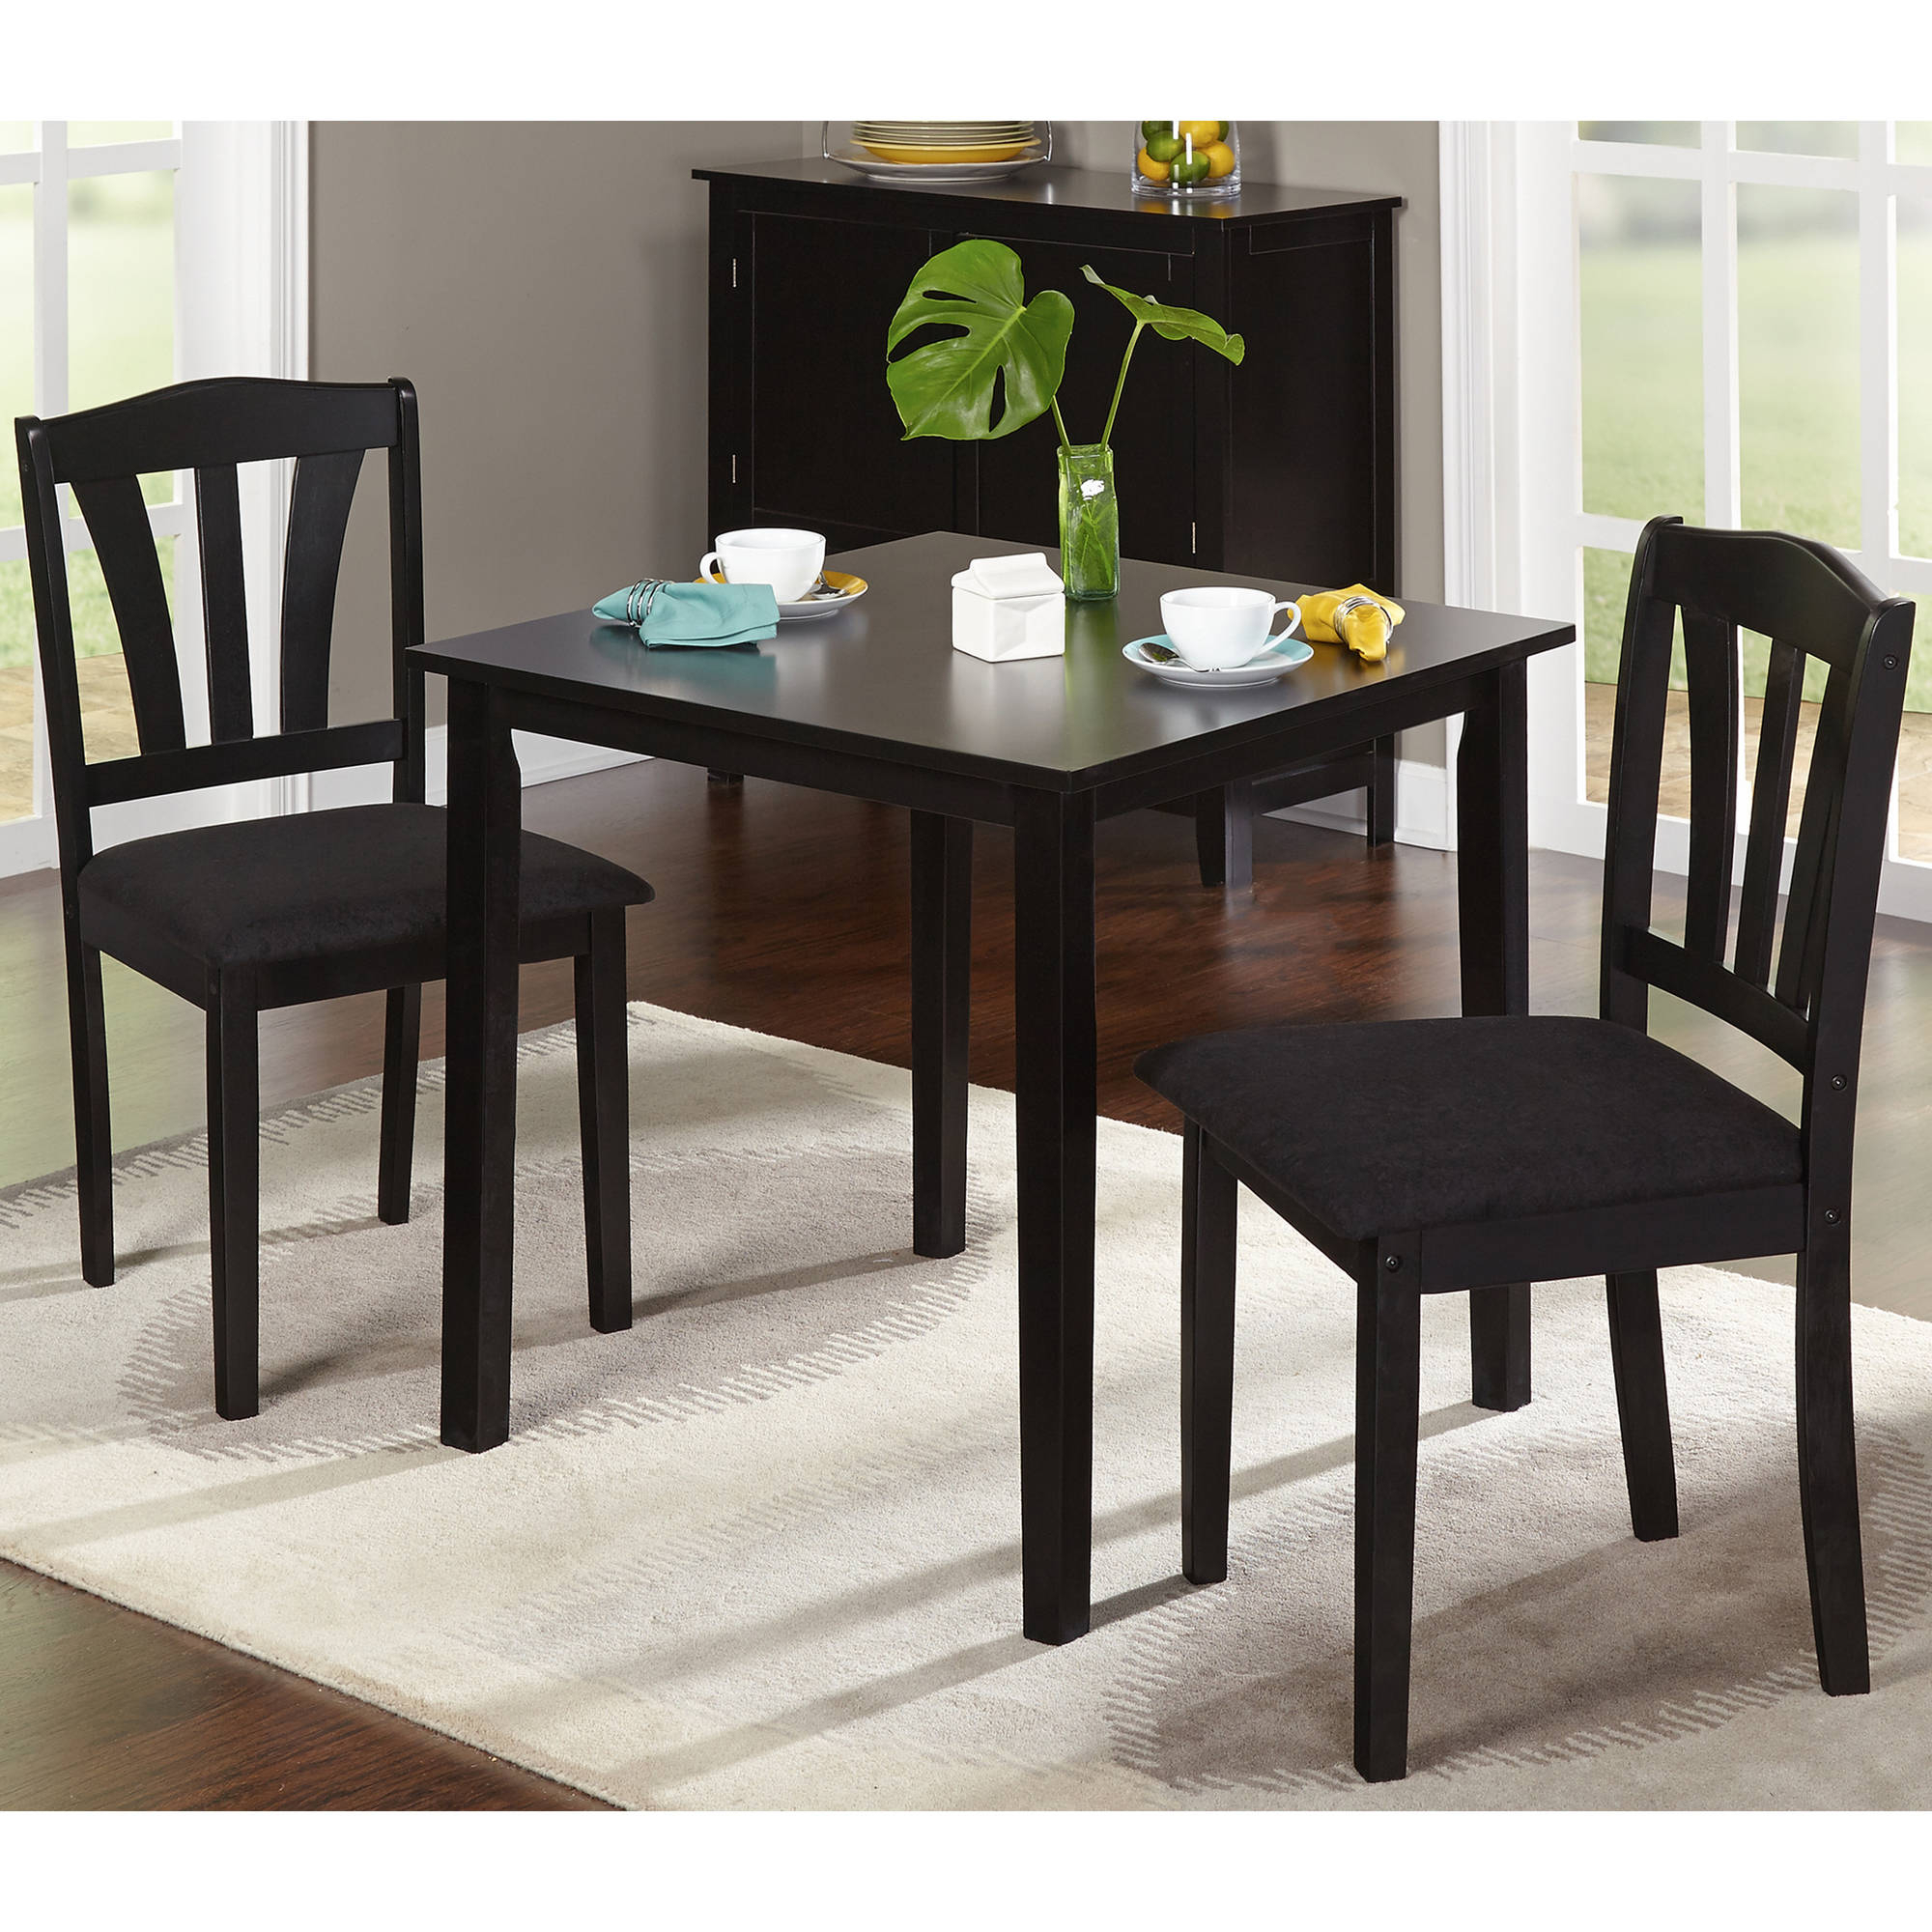 Trendy Metropolitan 3 Piece Dining Set, Multiple Finishes – Walmart Intended For Rossiter 3 Piece Dining Sets (#17 of 20)